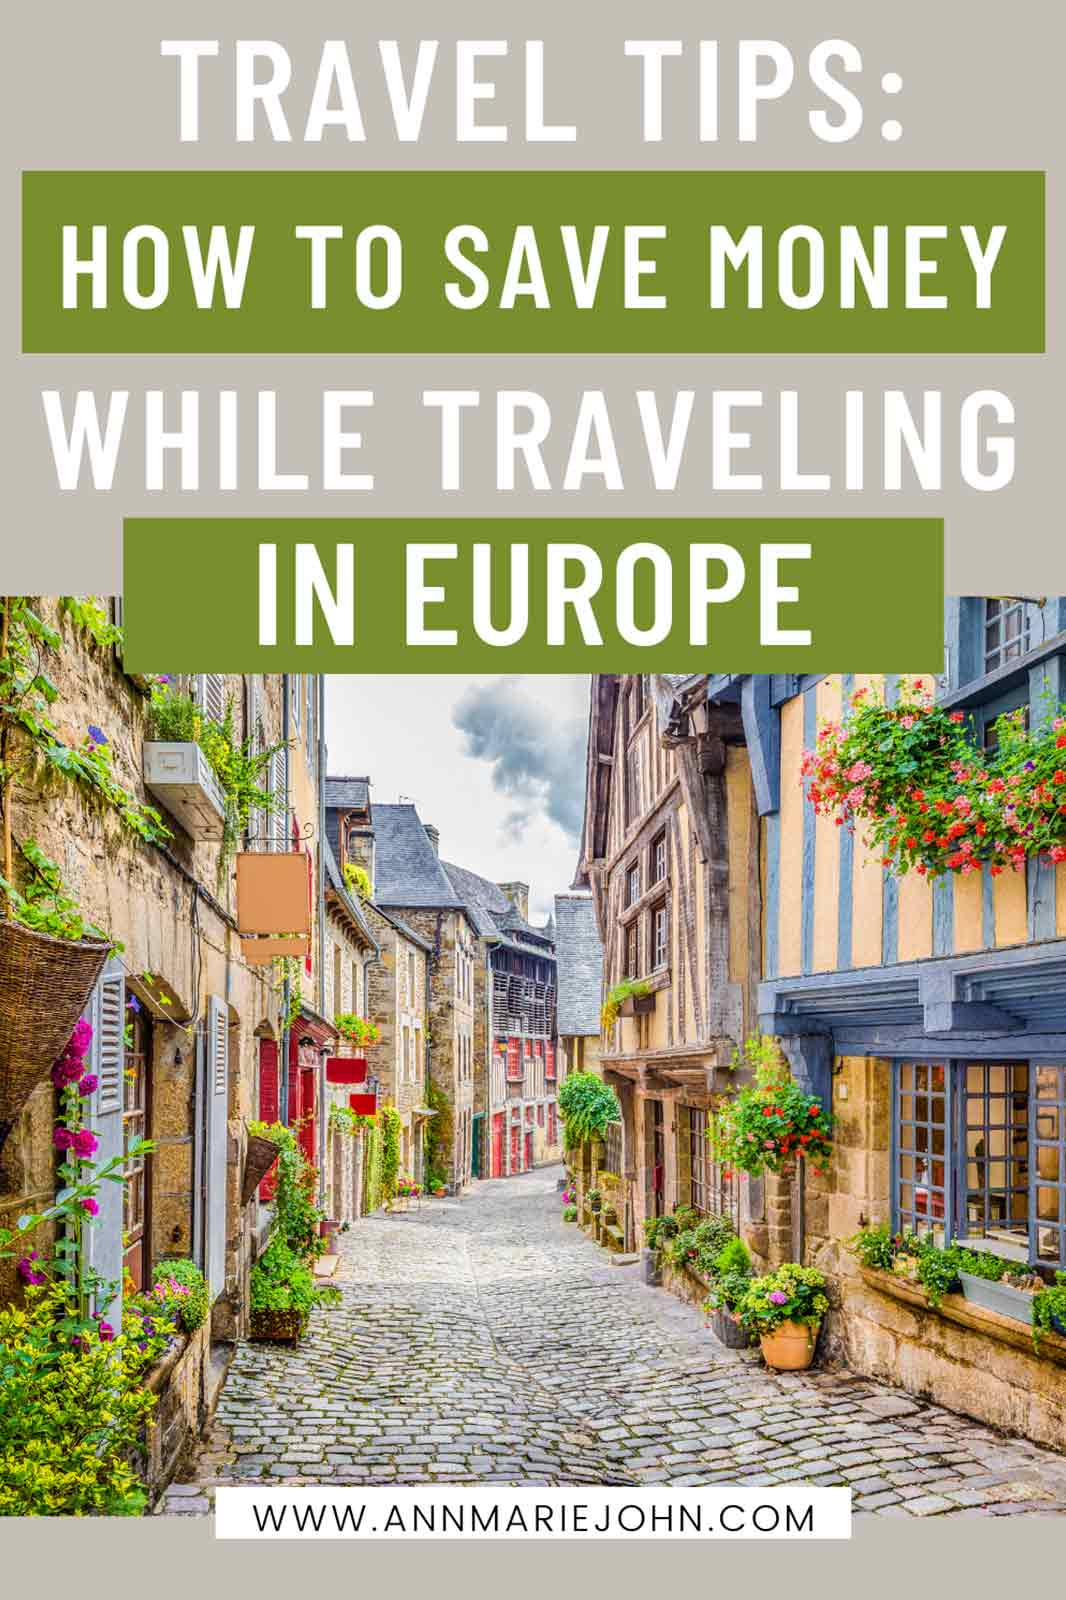 How to Save Money While Traveling in Europe